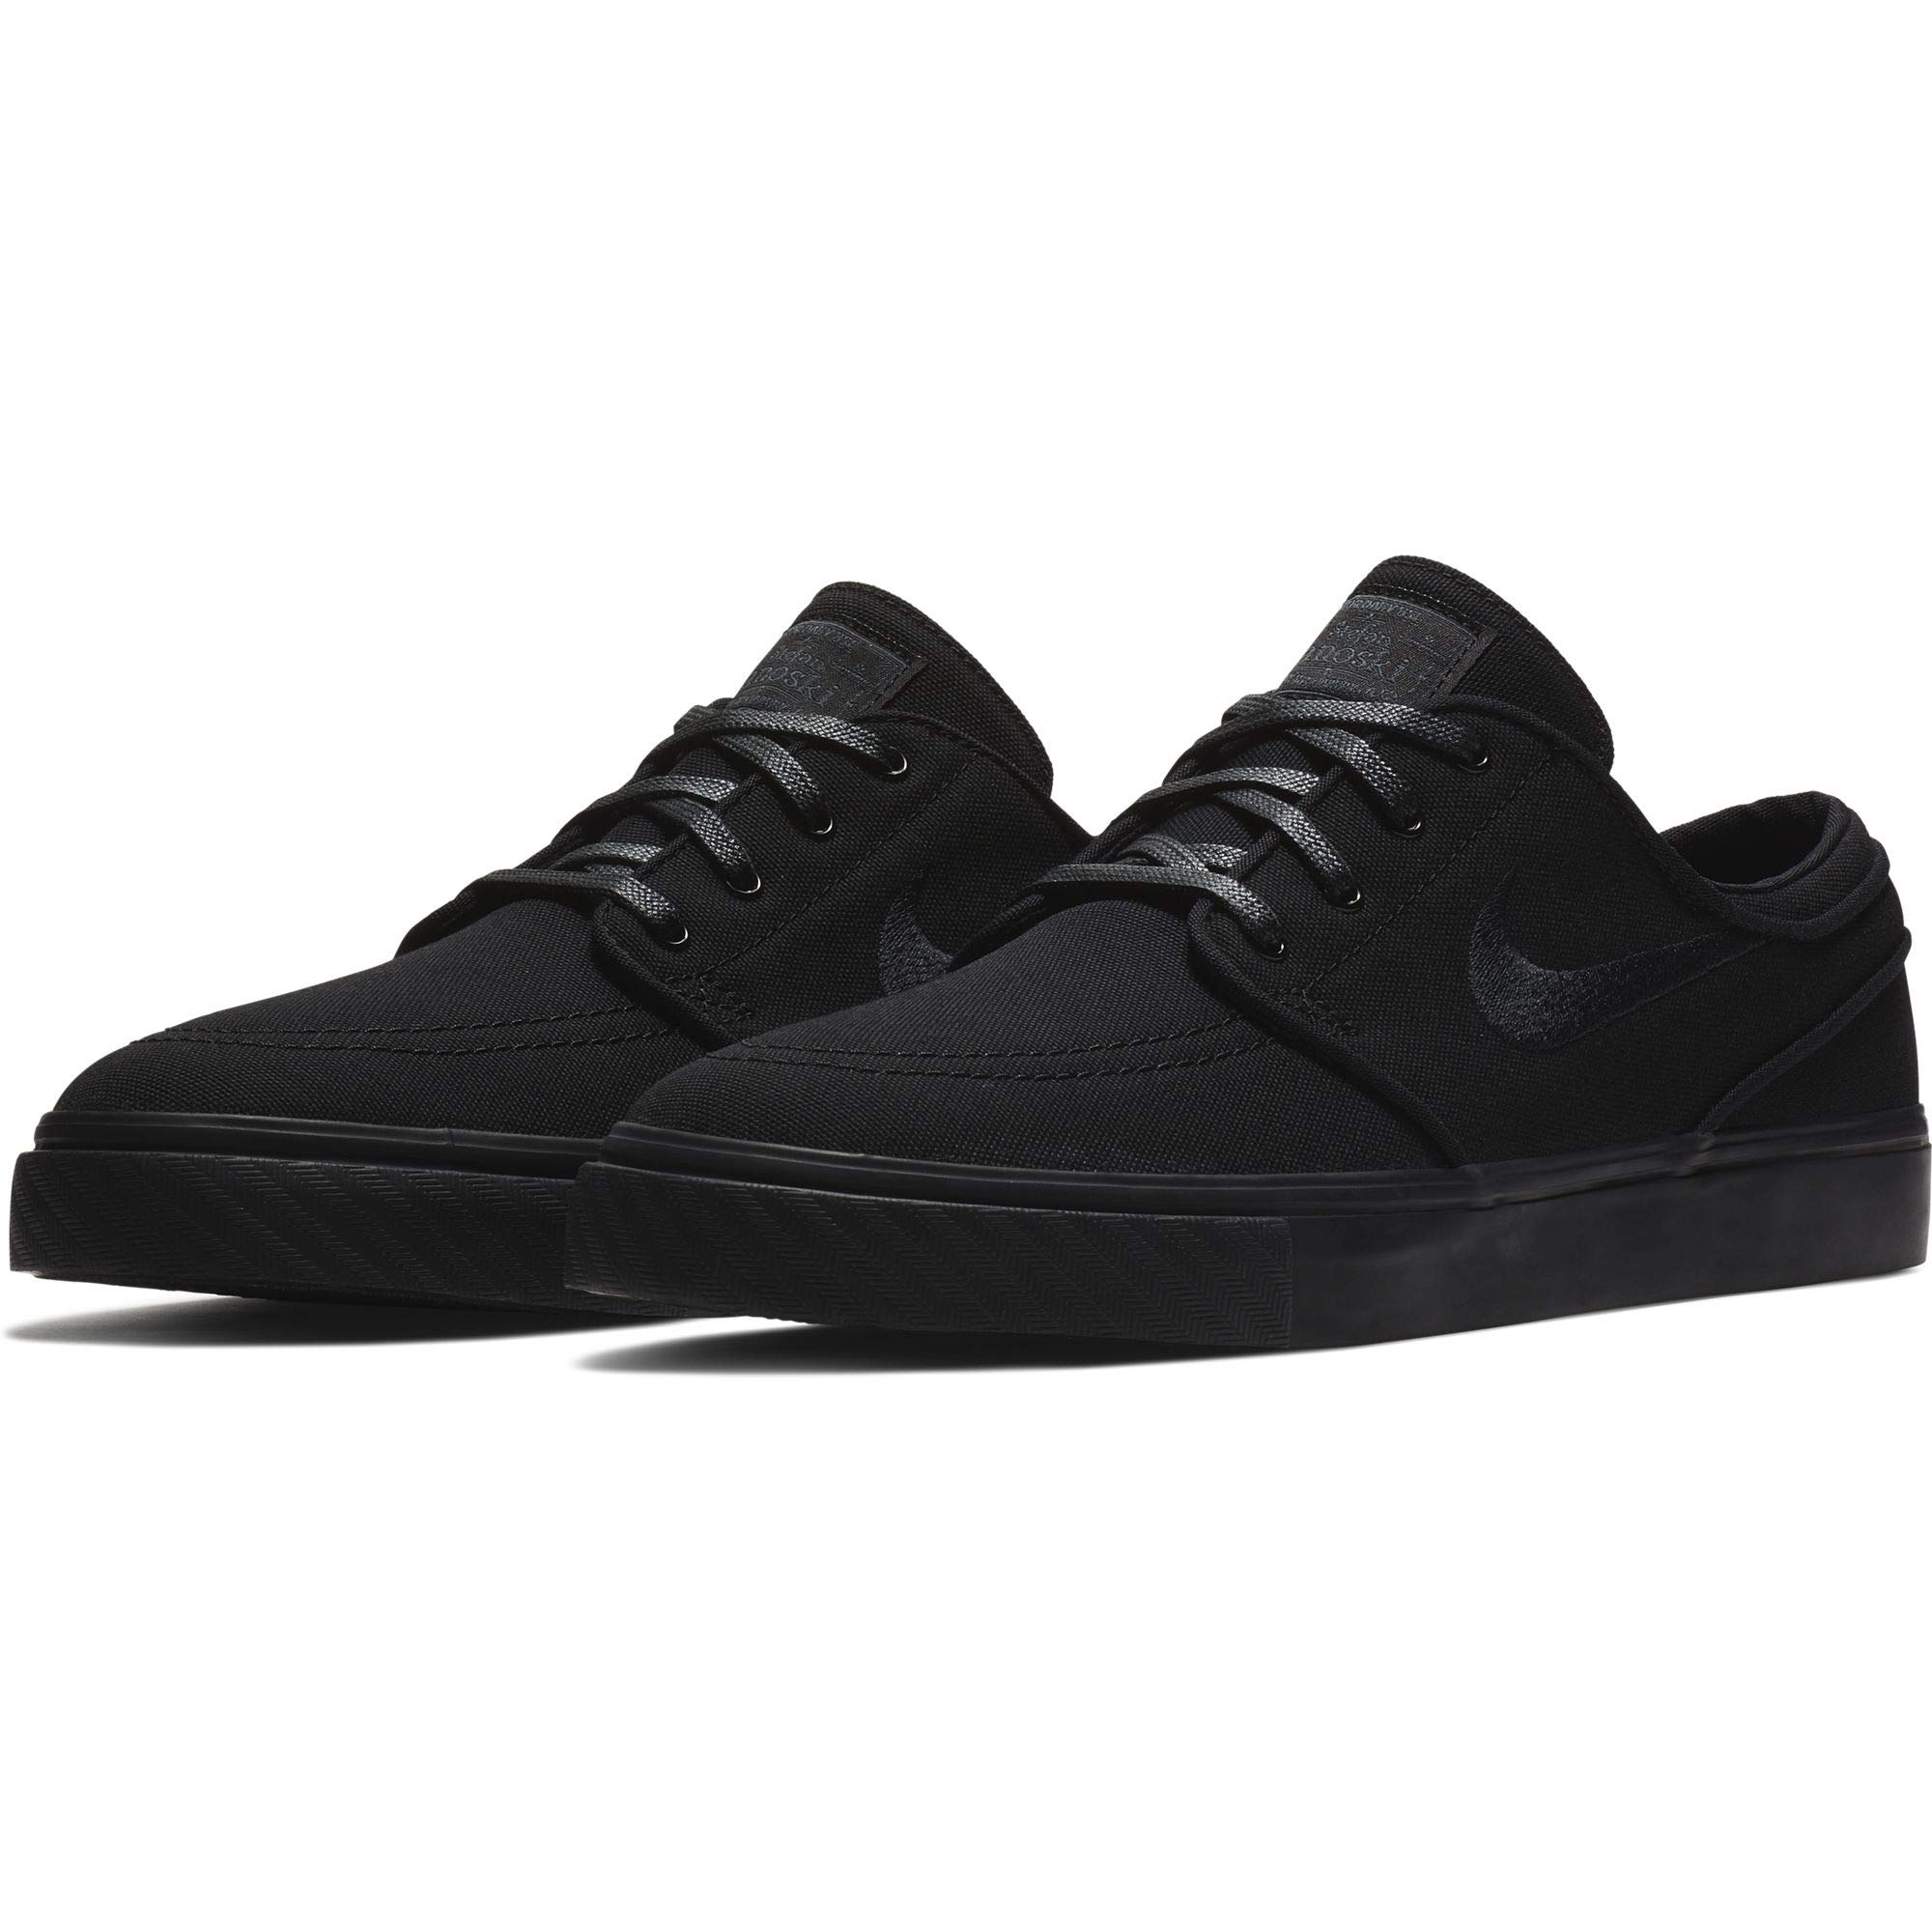 69b930e02dc5 Galleon - Nike SB Zoom Stefan Janoski Canvas Men s Shoes - 615957 (13 D(M)  US